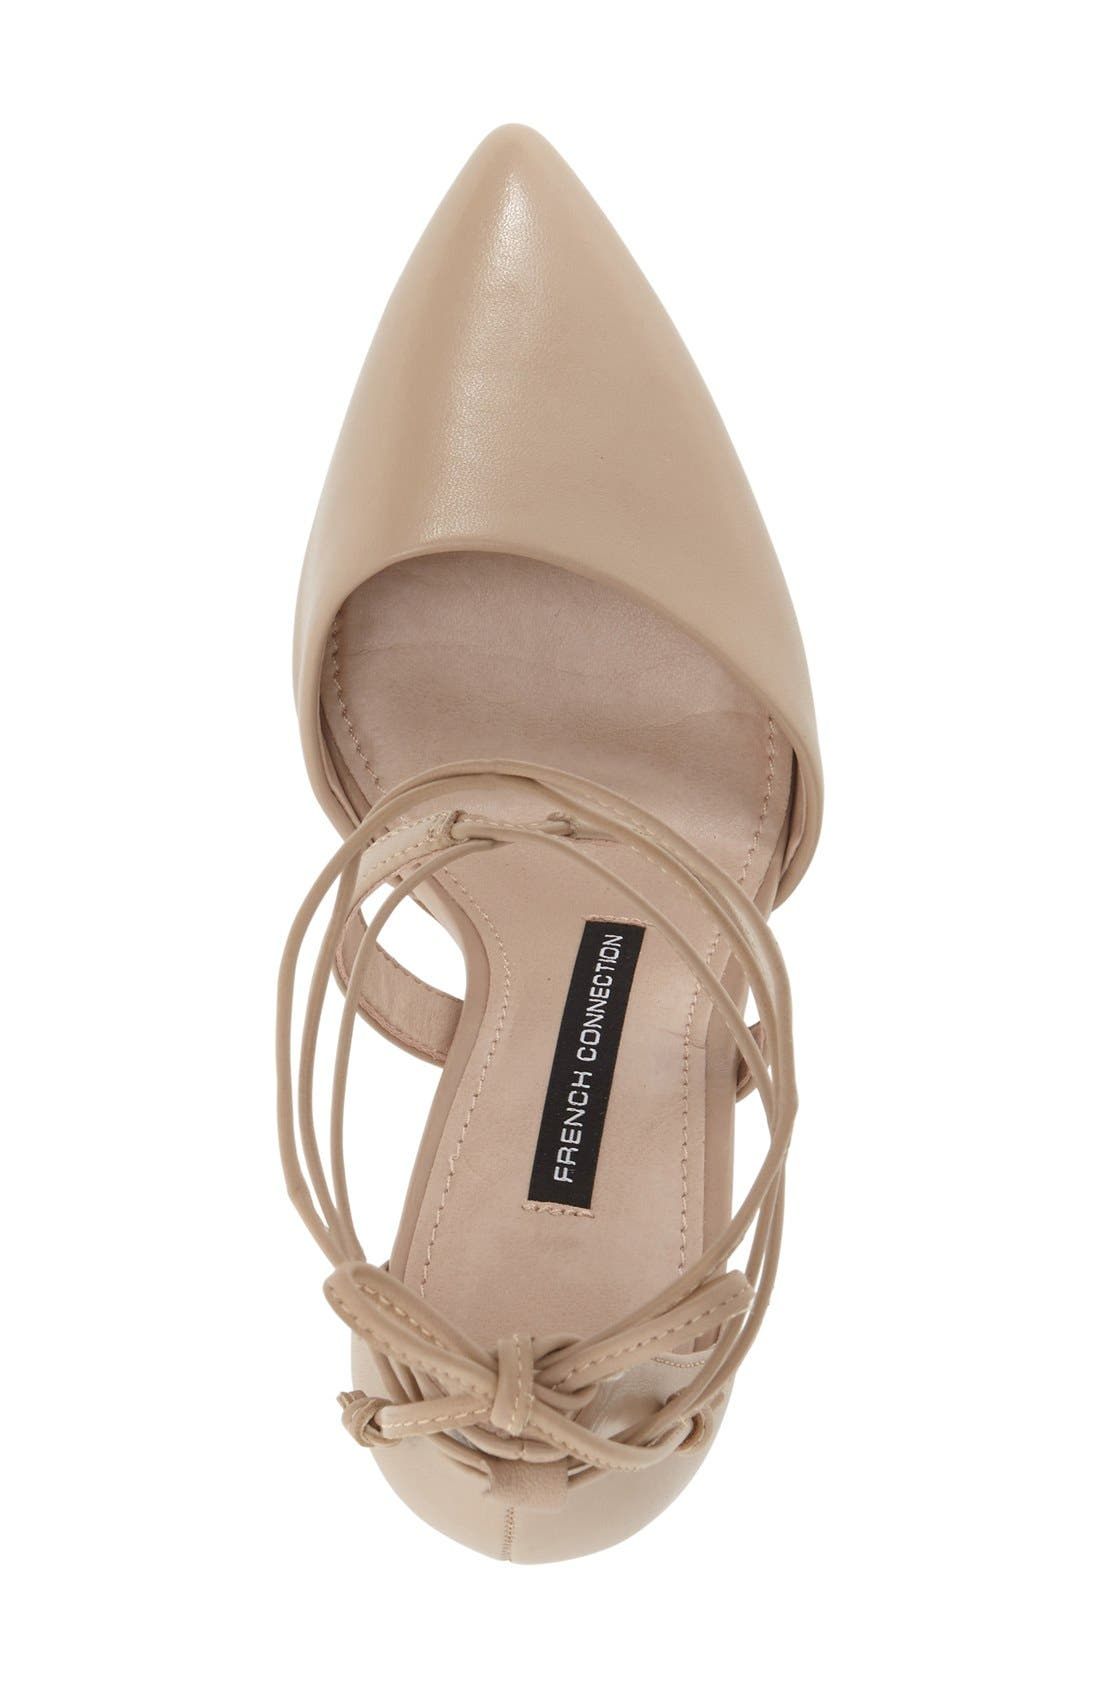 'Elise' d'Orsay Wraparound Lace Pump,                             Alternate thumbnail 3, color,                             Almost Nude Leather